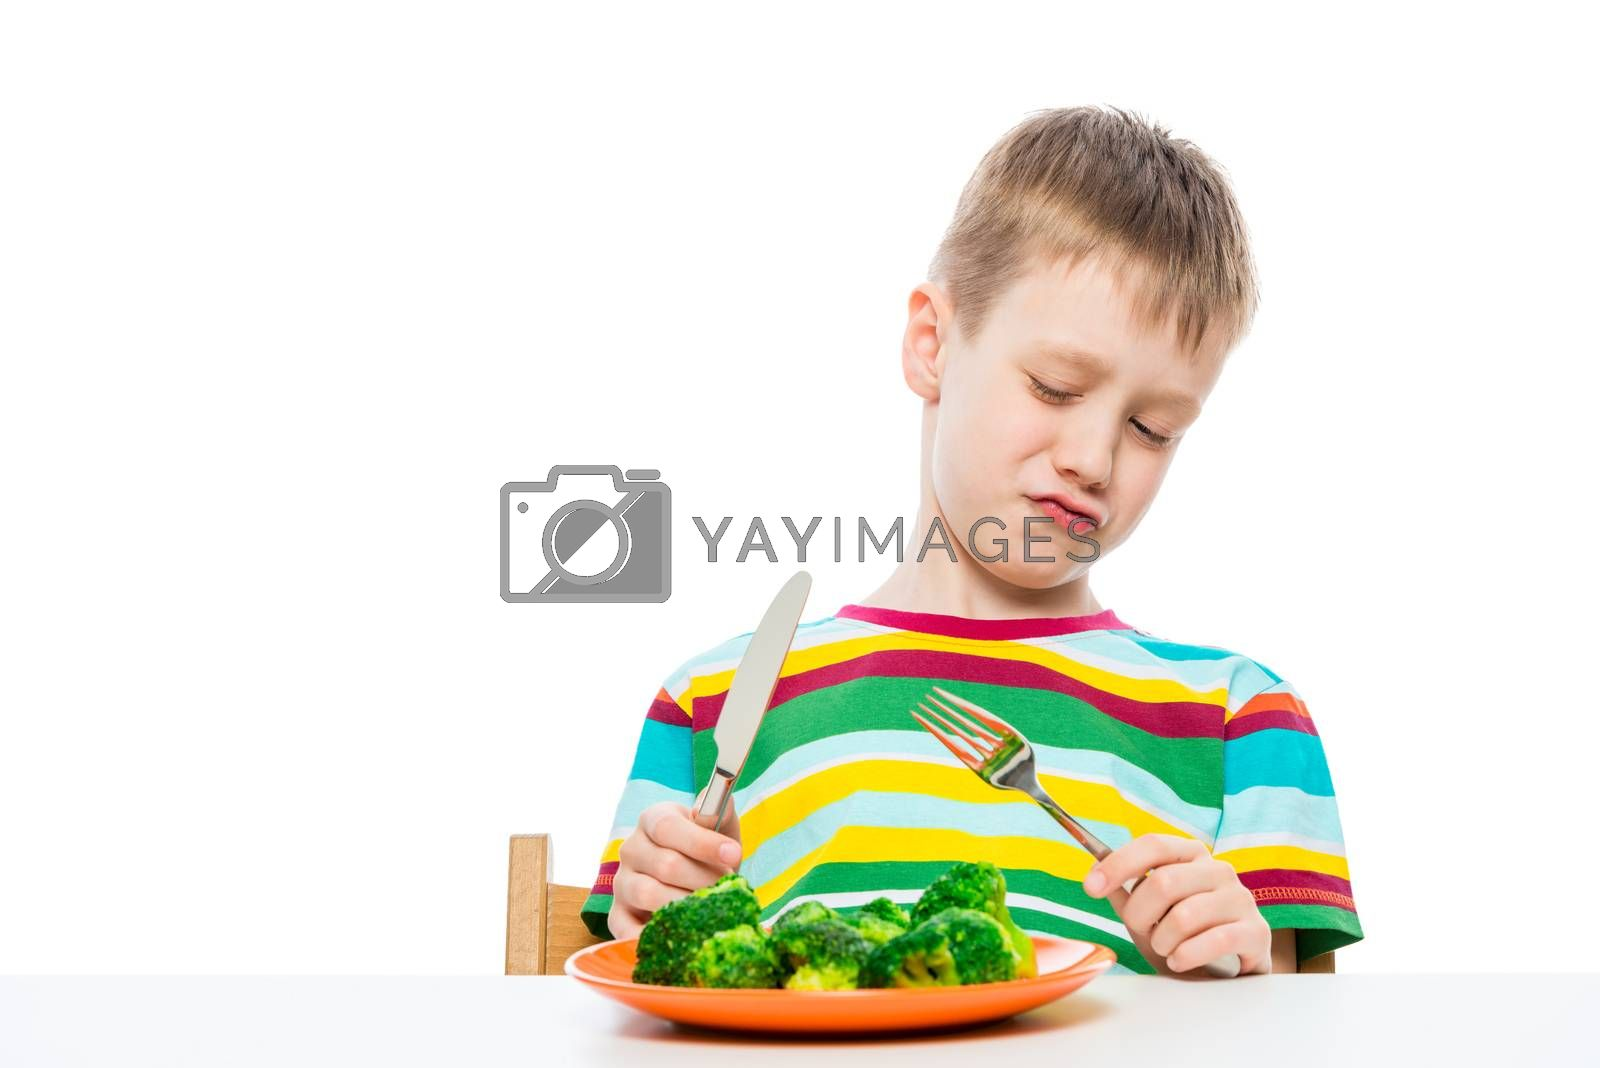 A boy of 10 years old looks at broccoli in a plate in disgust, portrait is isolated on a white background